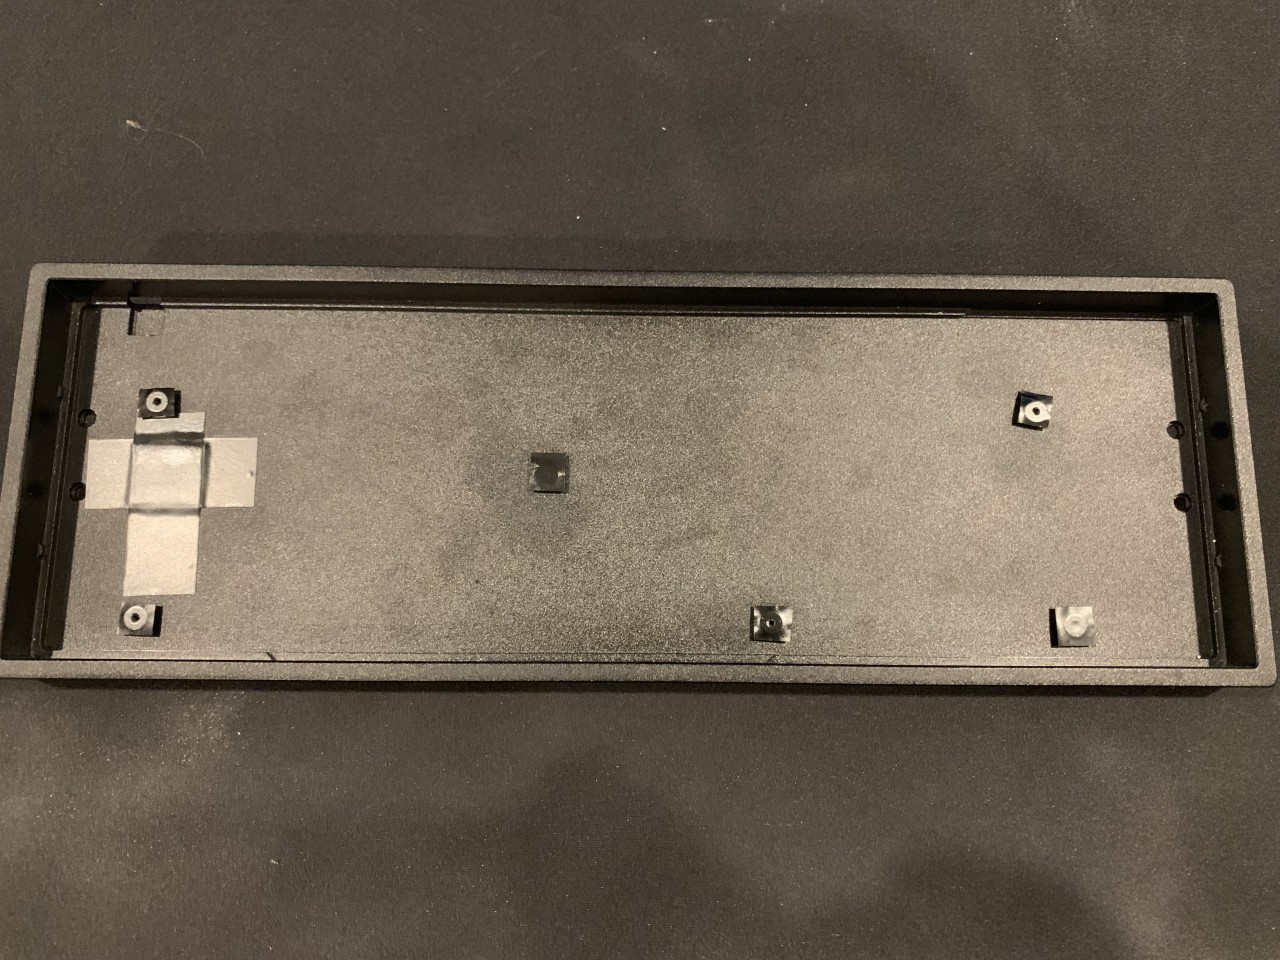 The TADA68 case risers touch the PCB, and only 4 of the 6 risers are used